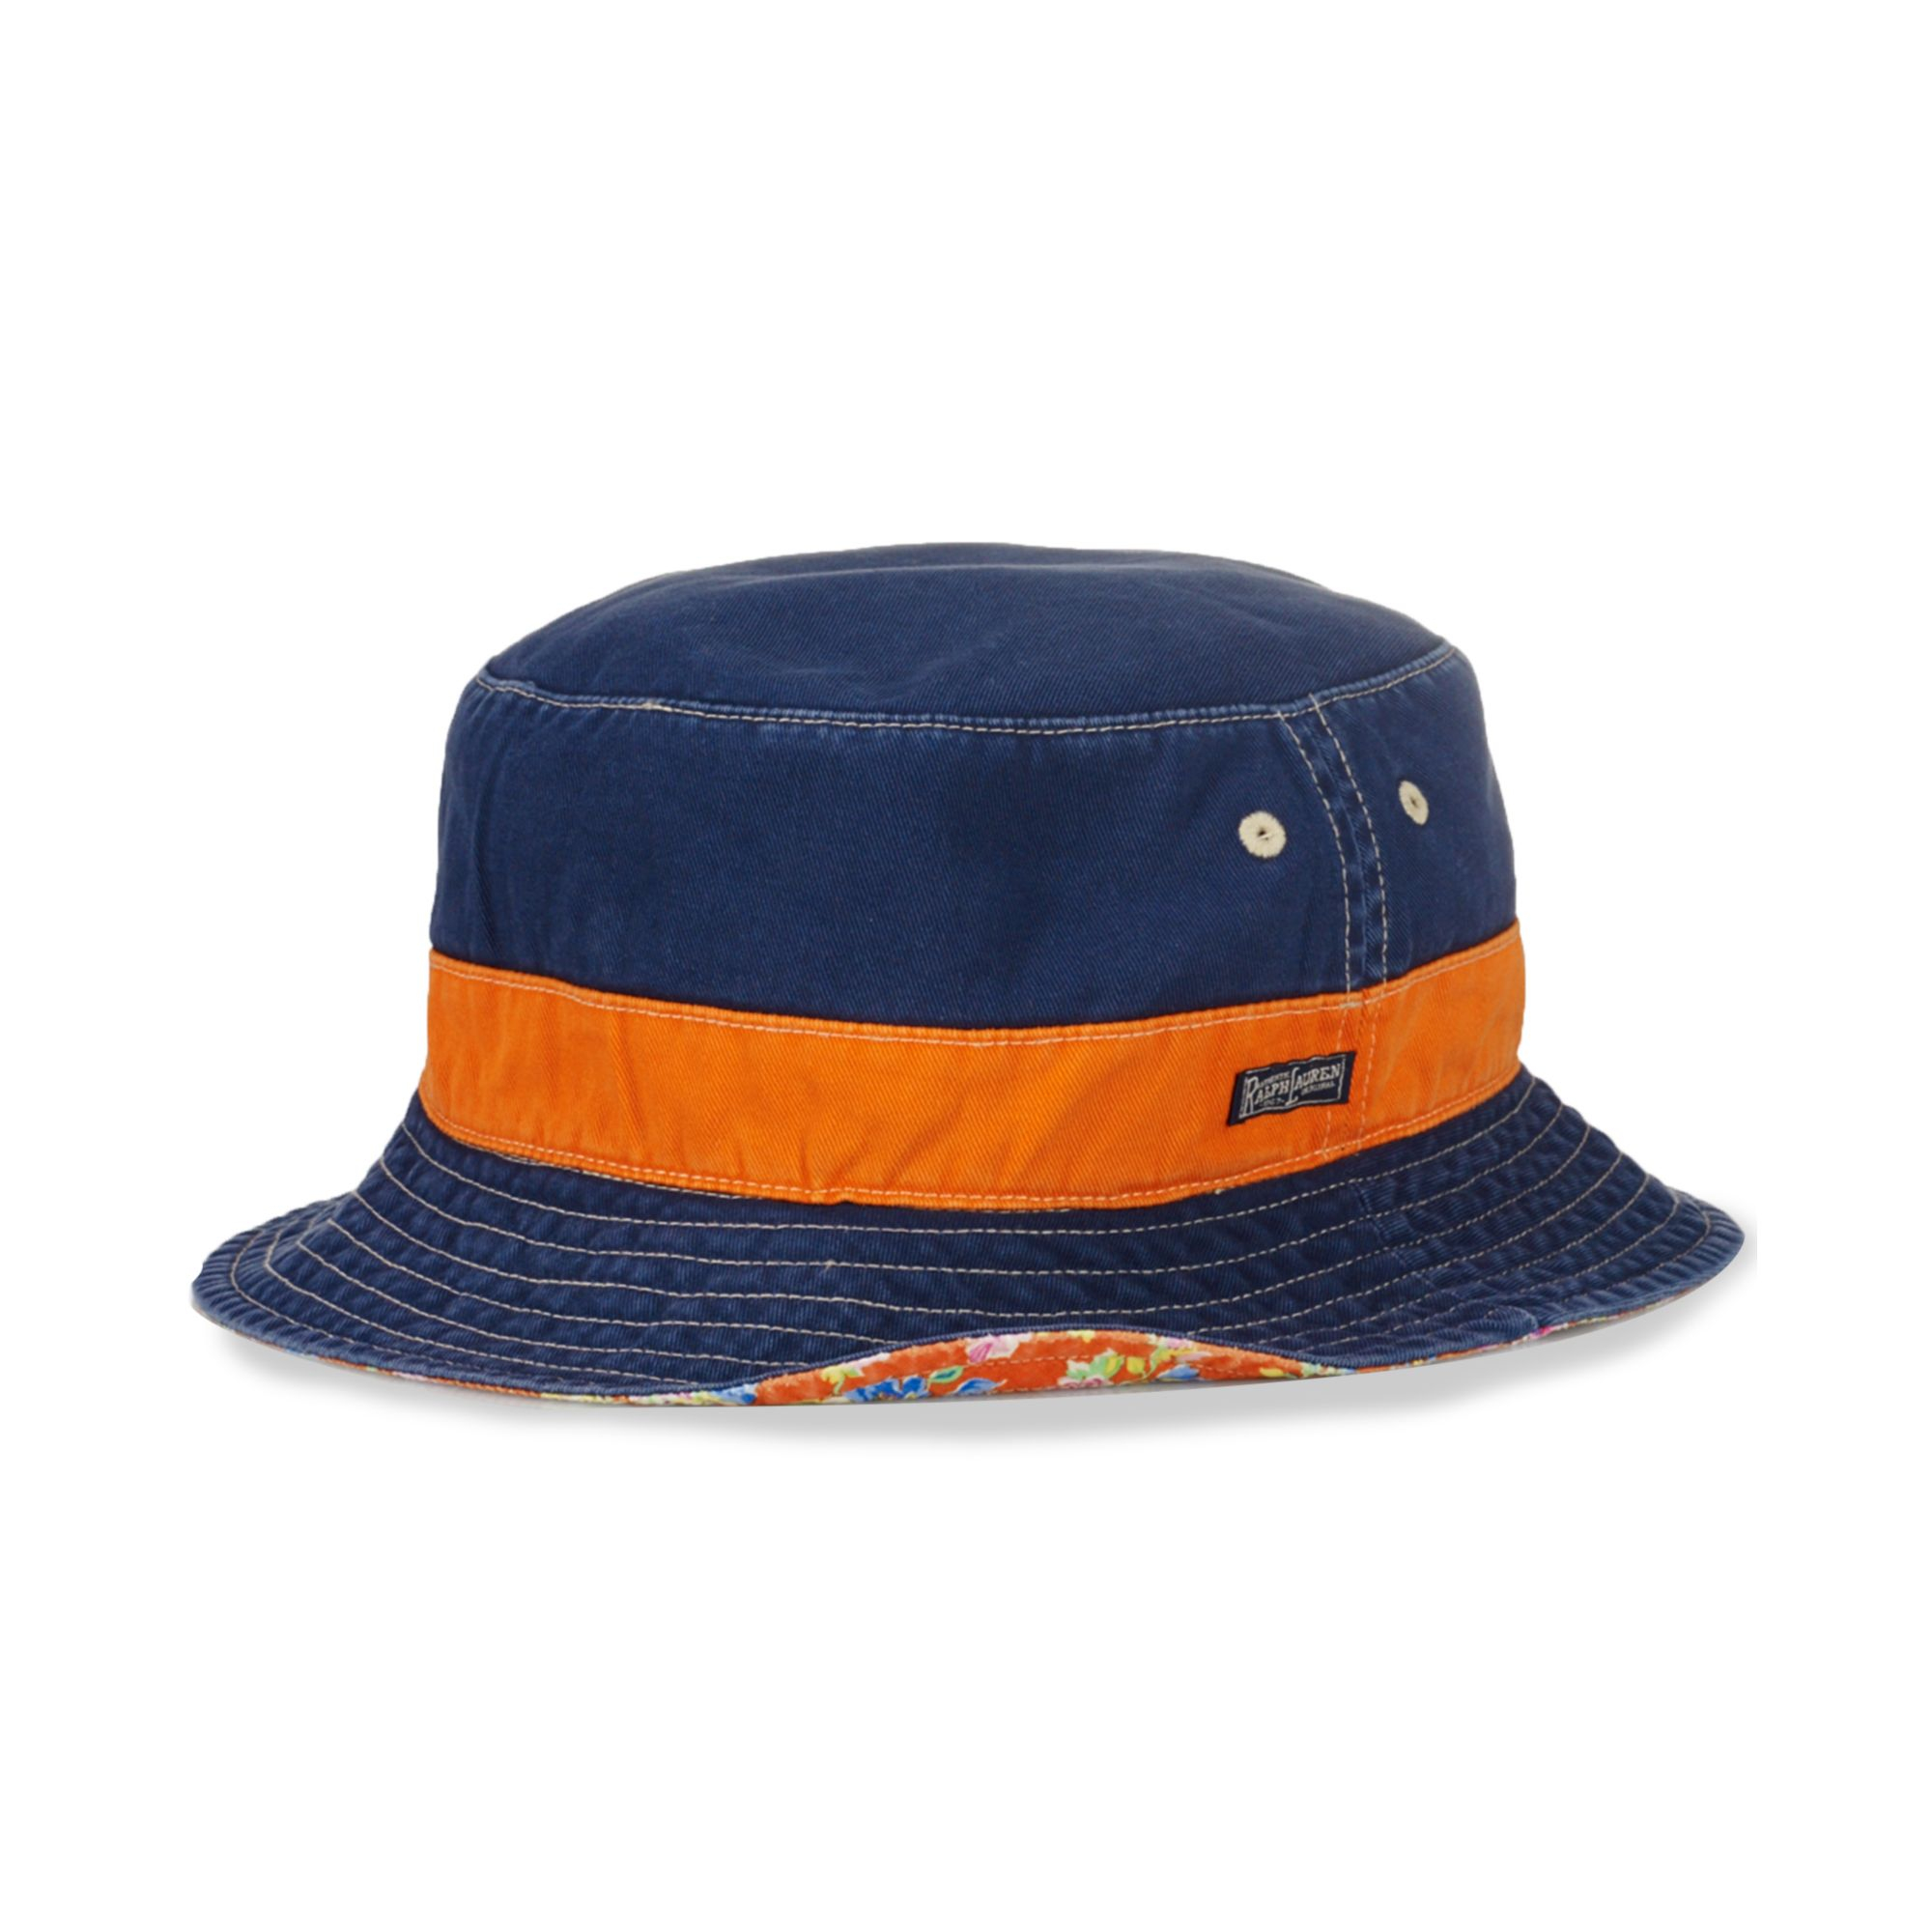 9f6c2404adf Lyst - Ralph Lauren Polo Big and Tall Reversible Bucket Hat in Blue ...